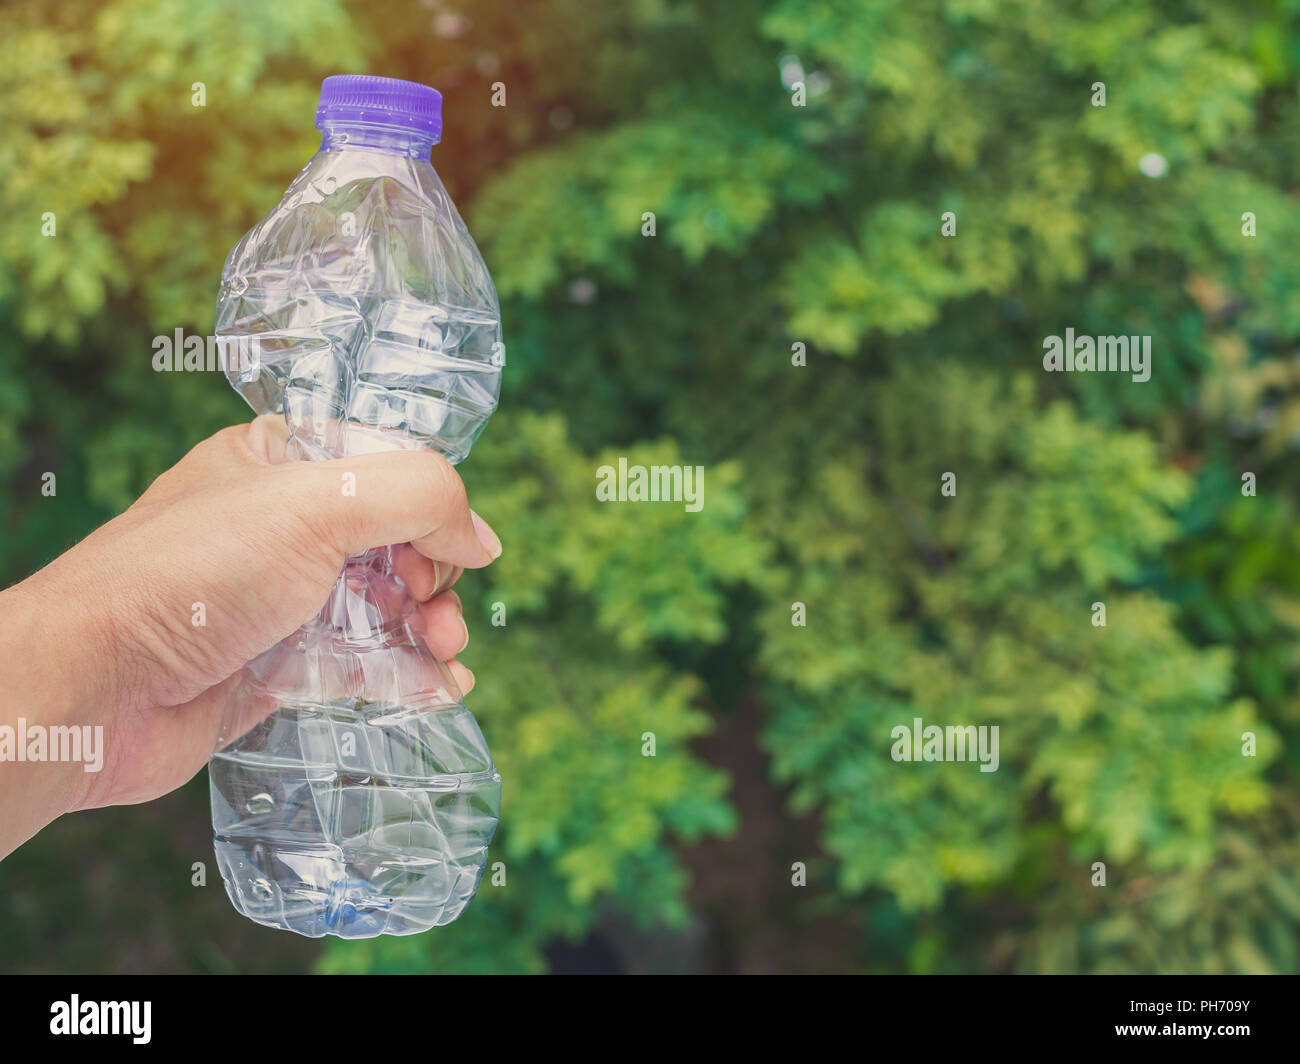 Hand squeezing recycle clear plastic drink water bottle on green nature background with copy space. - Stock Image